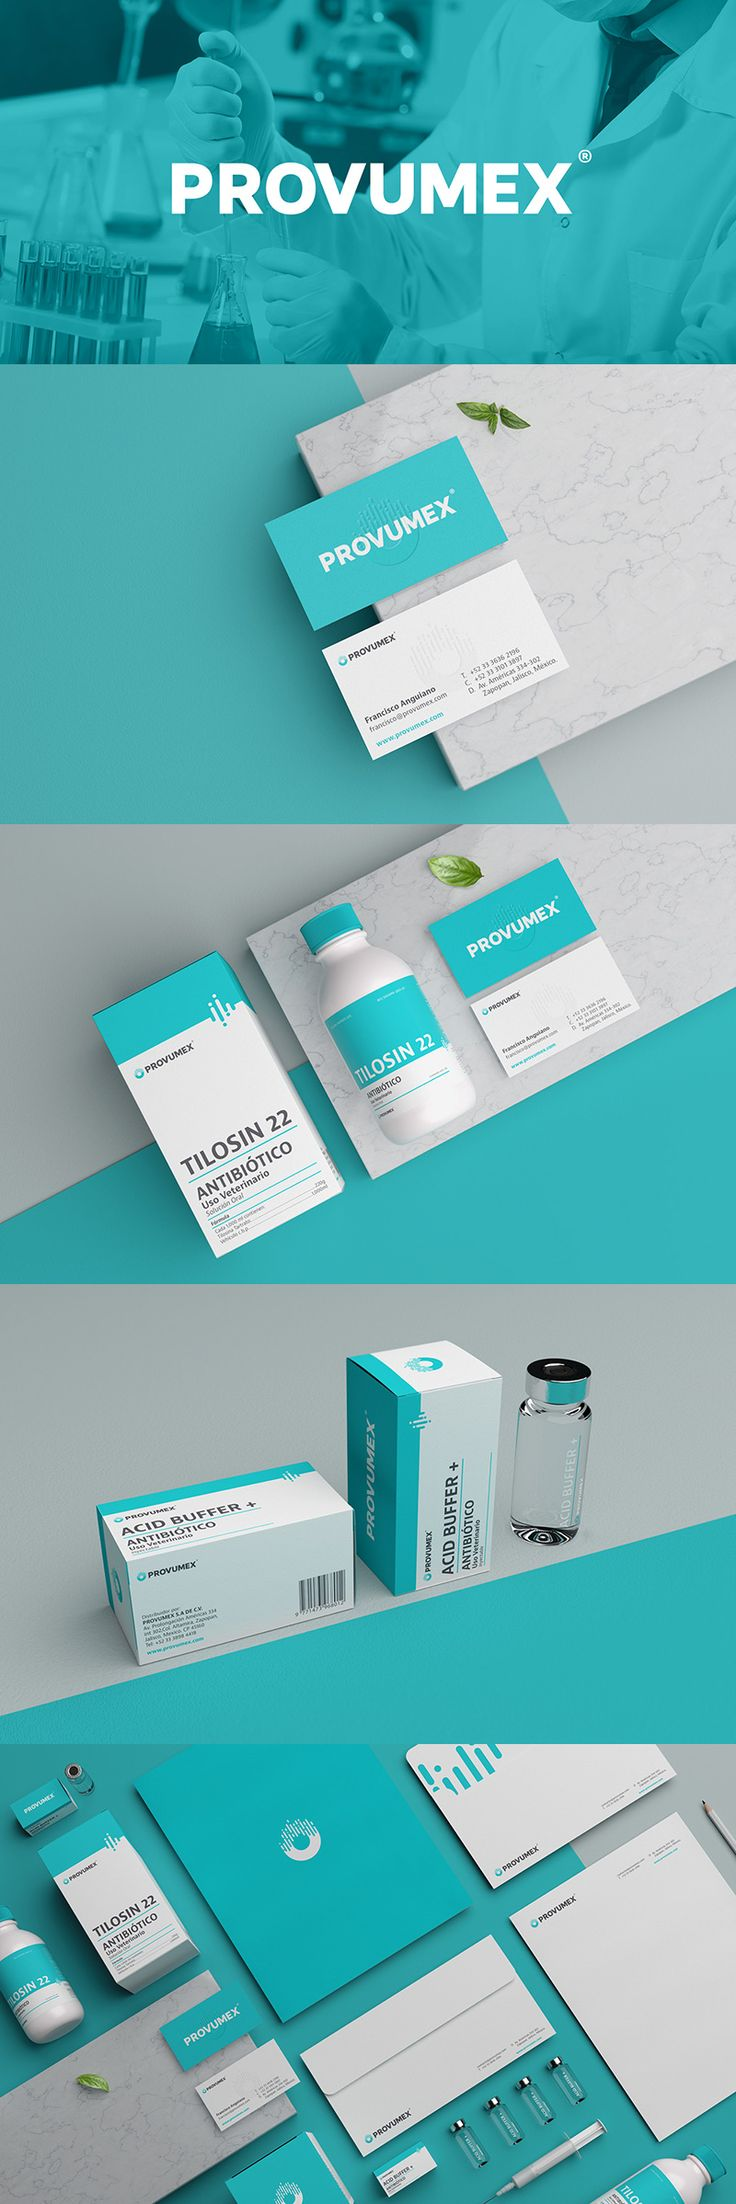 Creative Medical Branding and Healthcare Logos for